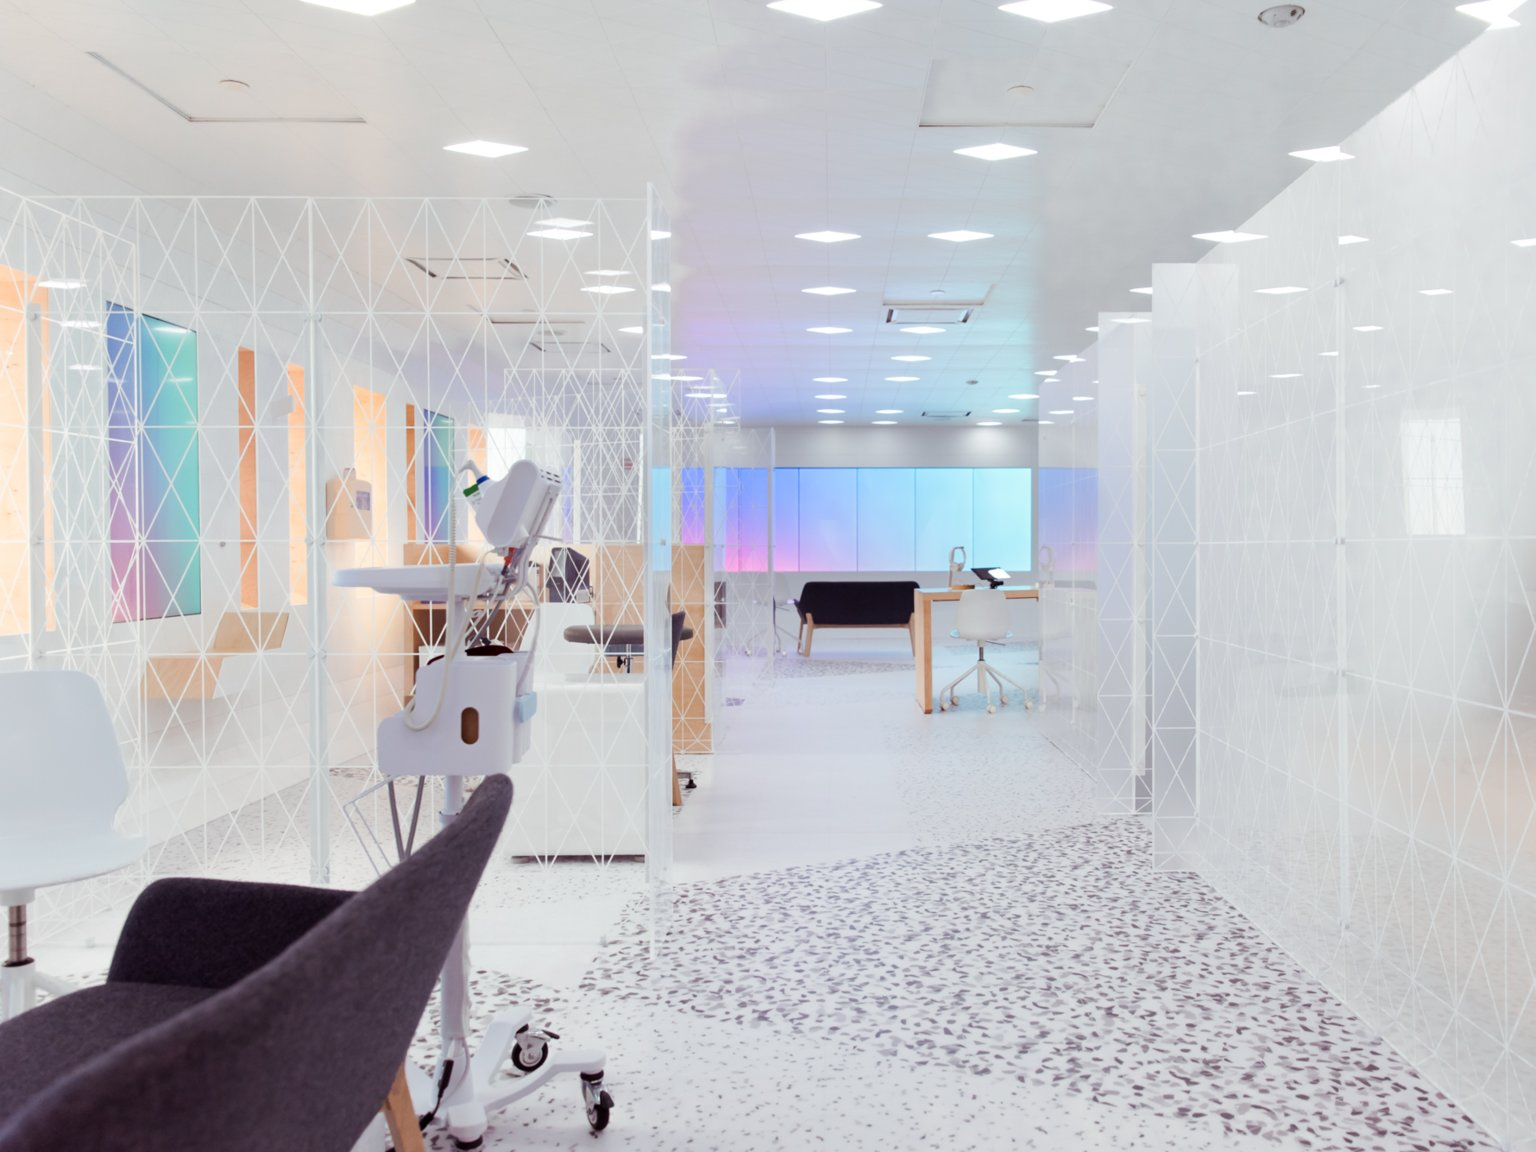 Image of a futuristic-looking lab with white walls and colored screens